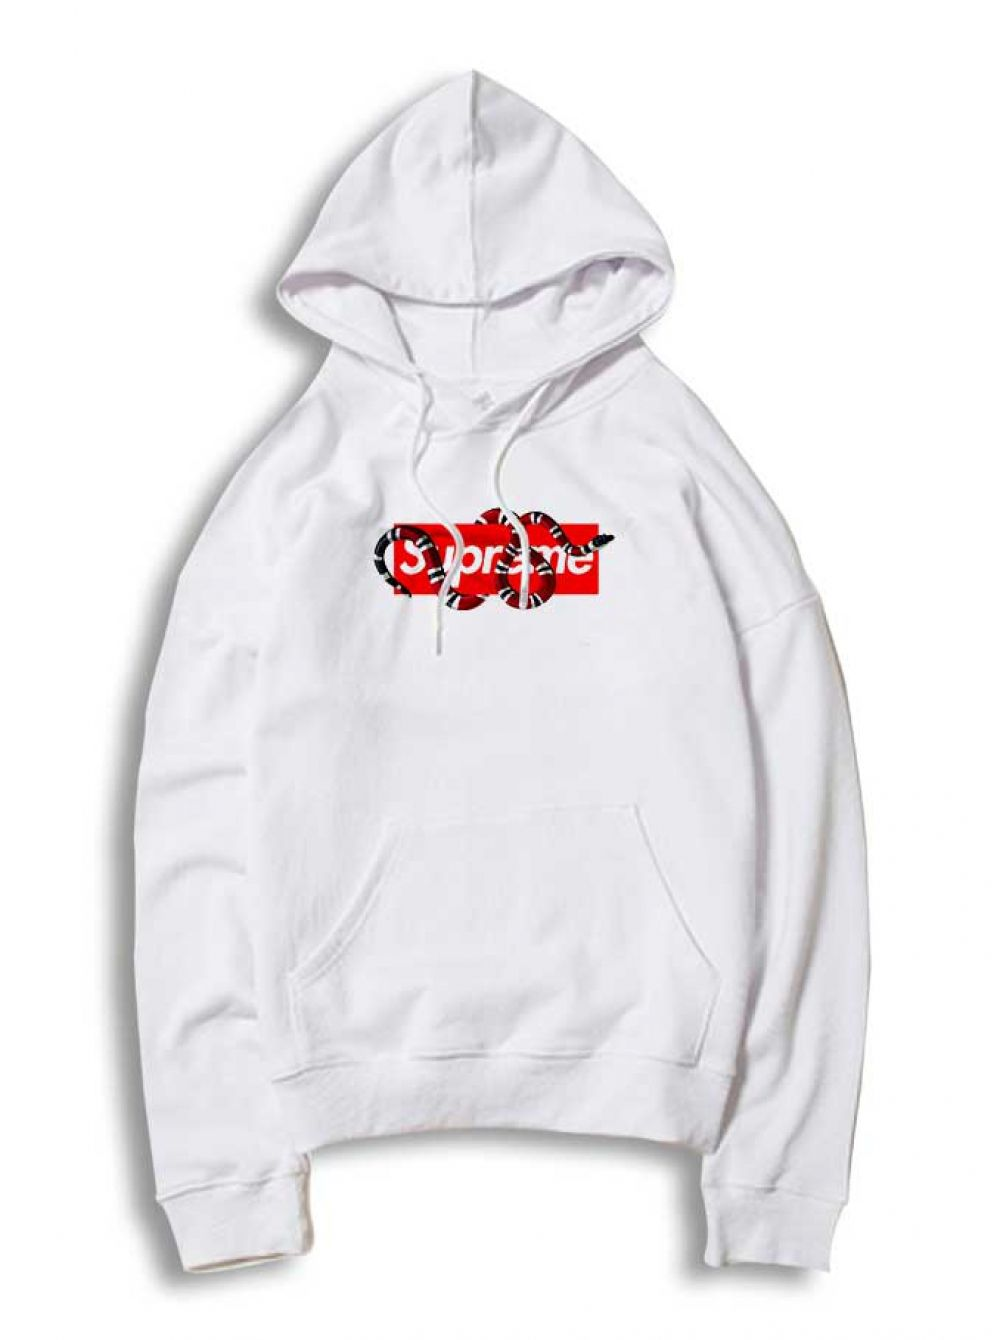 657241b72 Snake Supreme Hoodie $ 33.50 #Tee #Hype #Outfits #Outfit #Hypebeast ...